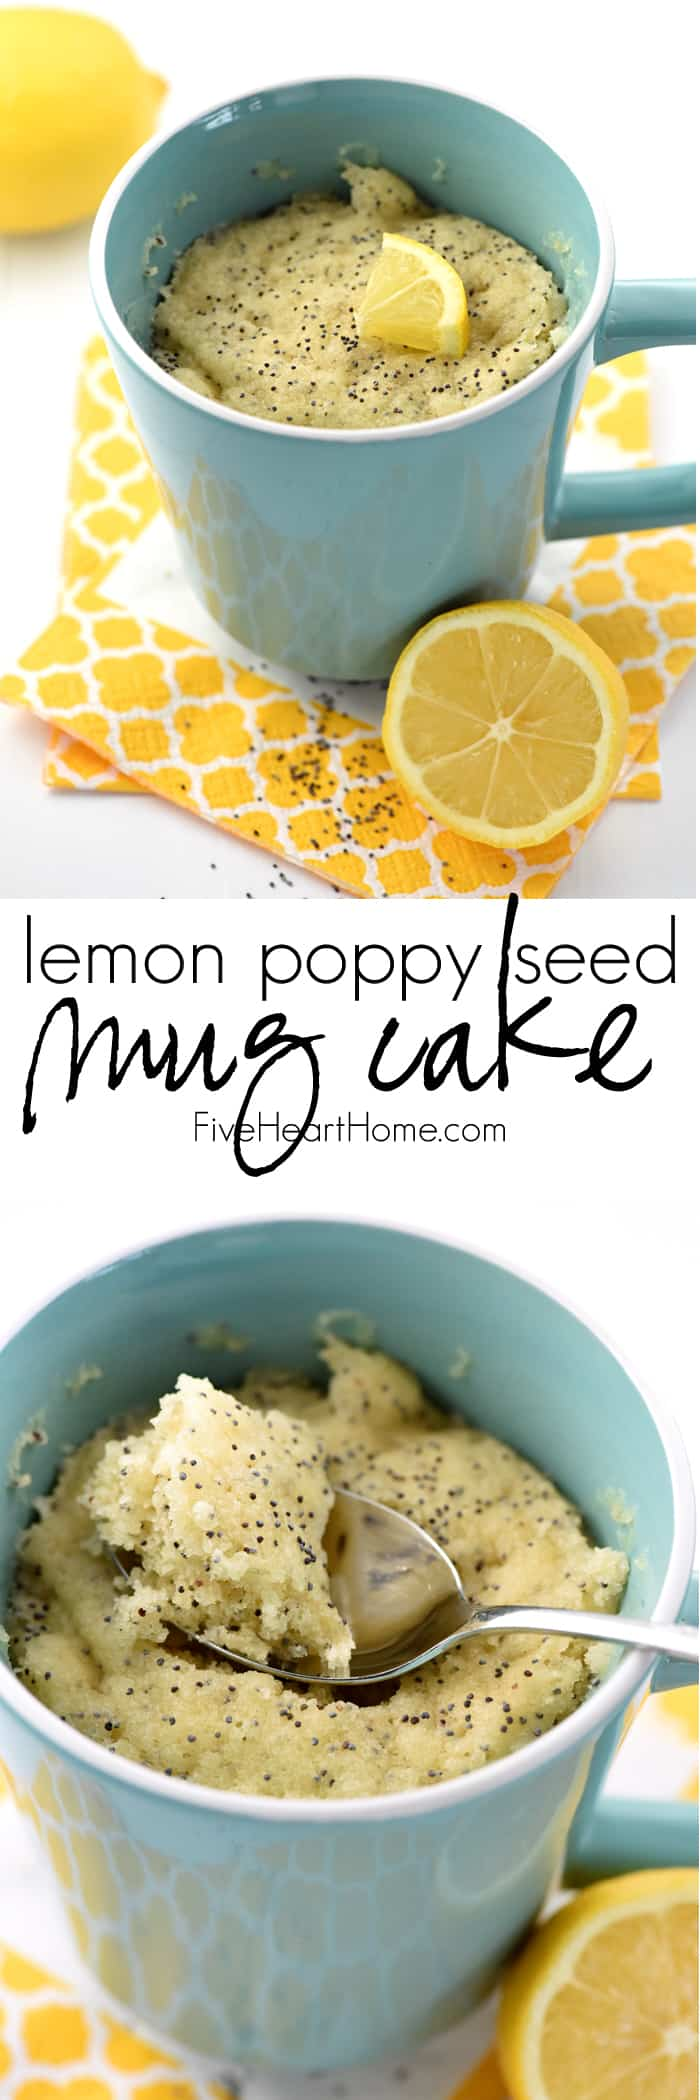 Lemon Poppy Seed Muffin Mug Cake Collage with Text Overlay